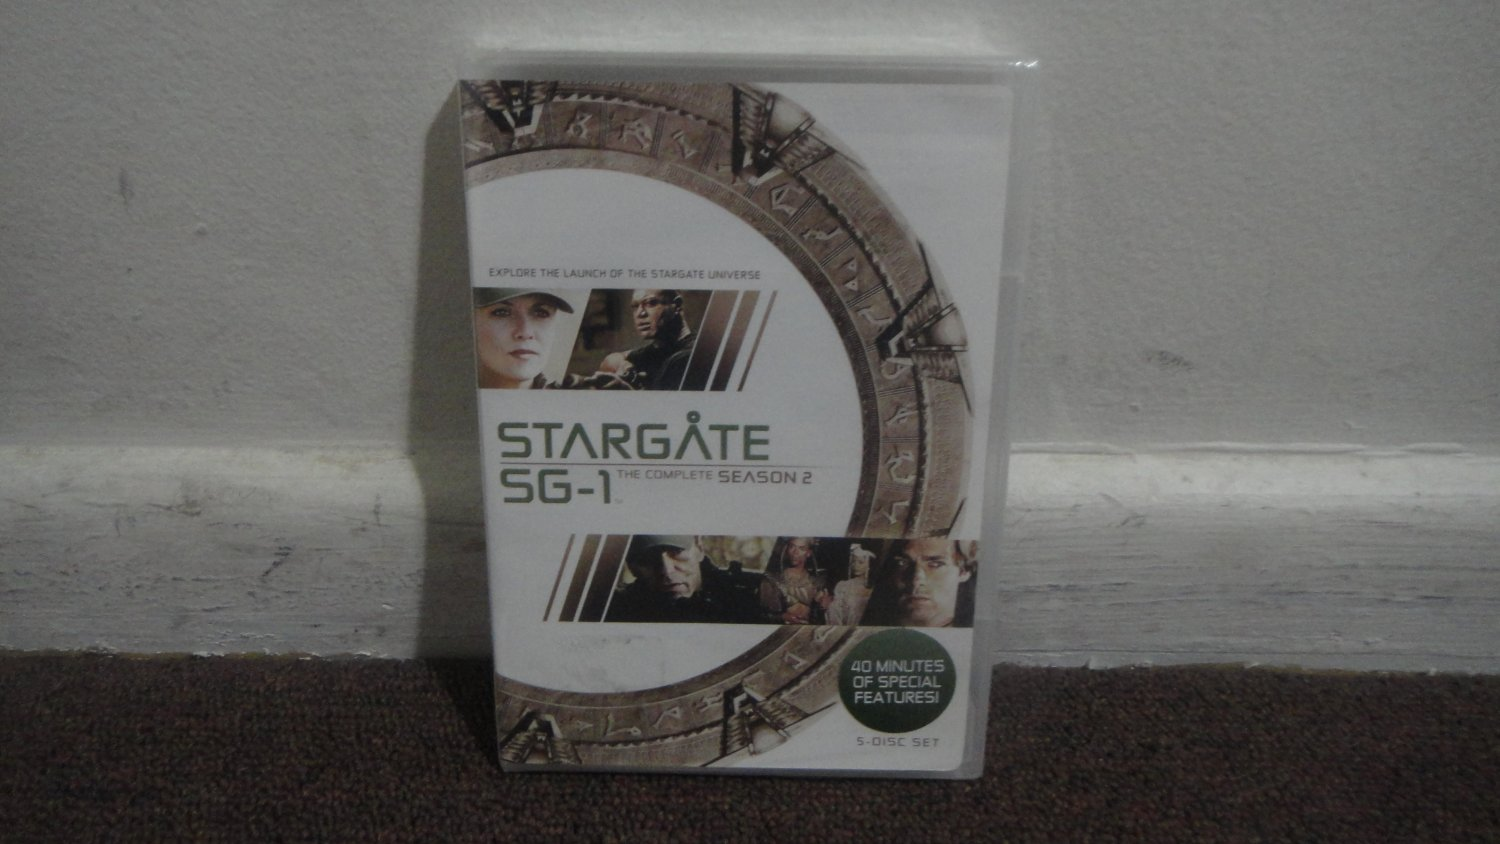 STARGATE SG-1 - DVD SET: The Complete 2nd Season, Season 2, Brand New, Sealed. LOOK!!!